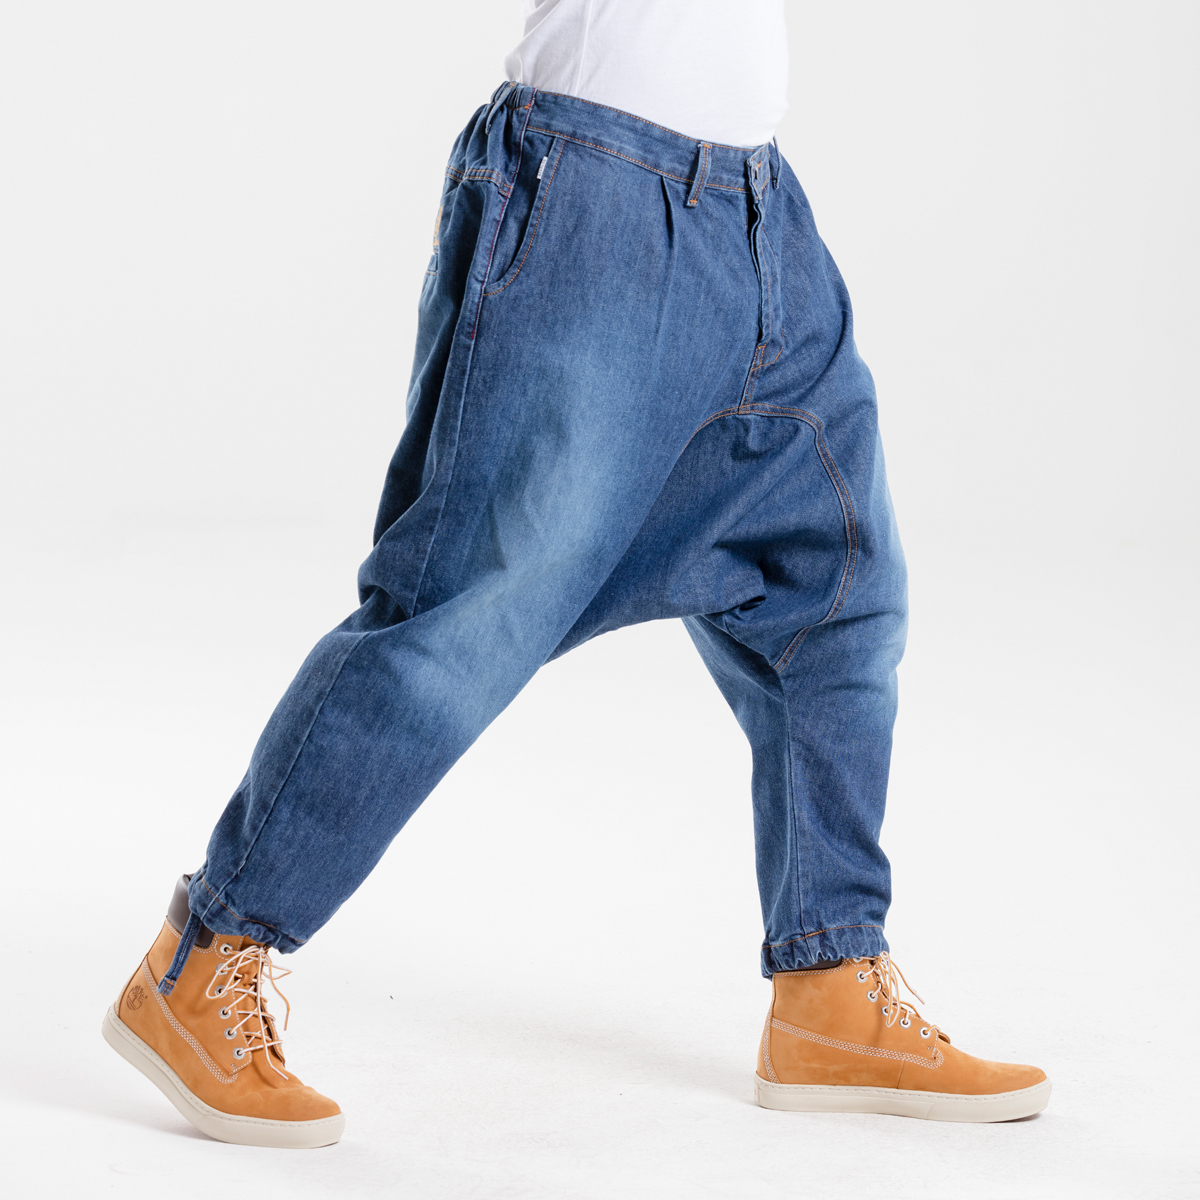 saroual jeans evo light used dcjeans face